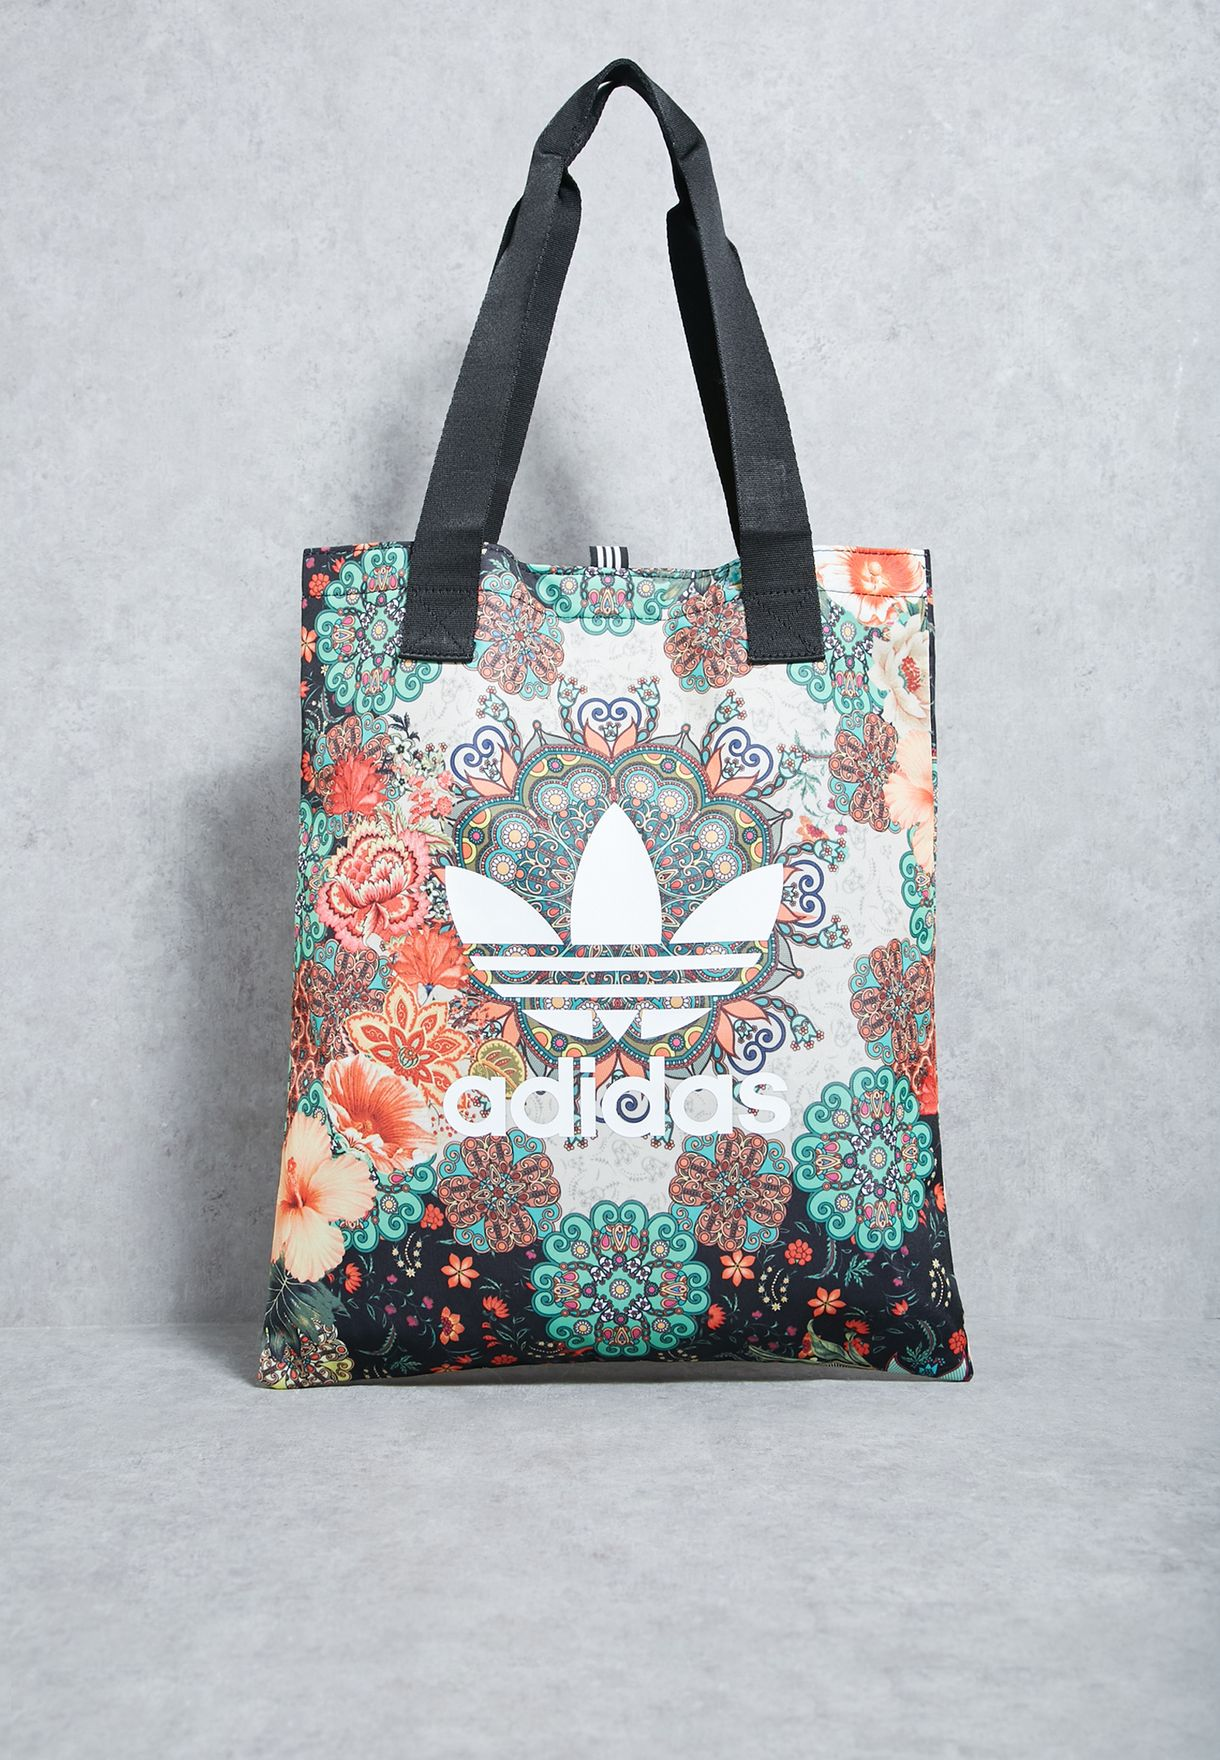 78867da44b Shop adidas Originals prints Floral Print Shopper BR4142 for Women ...